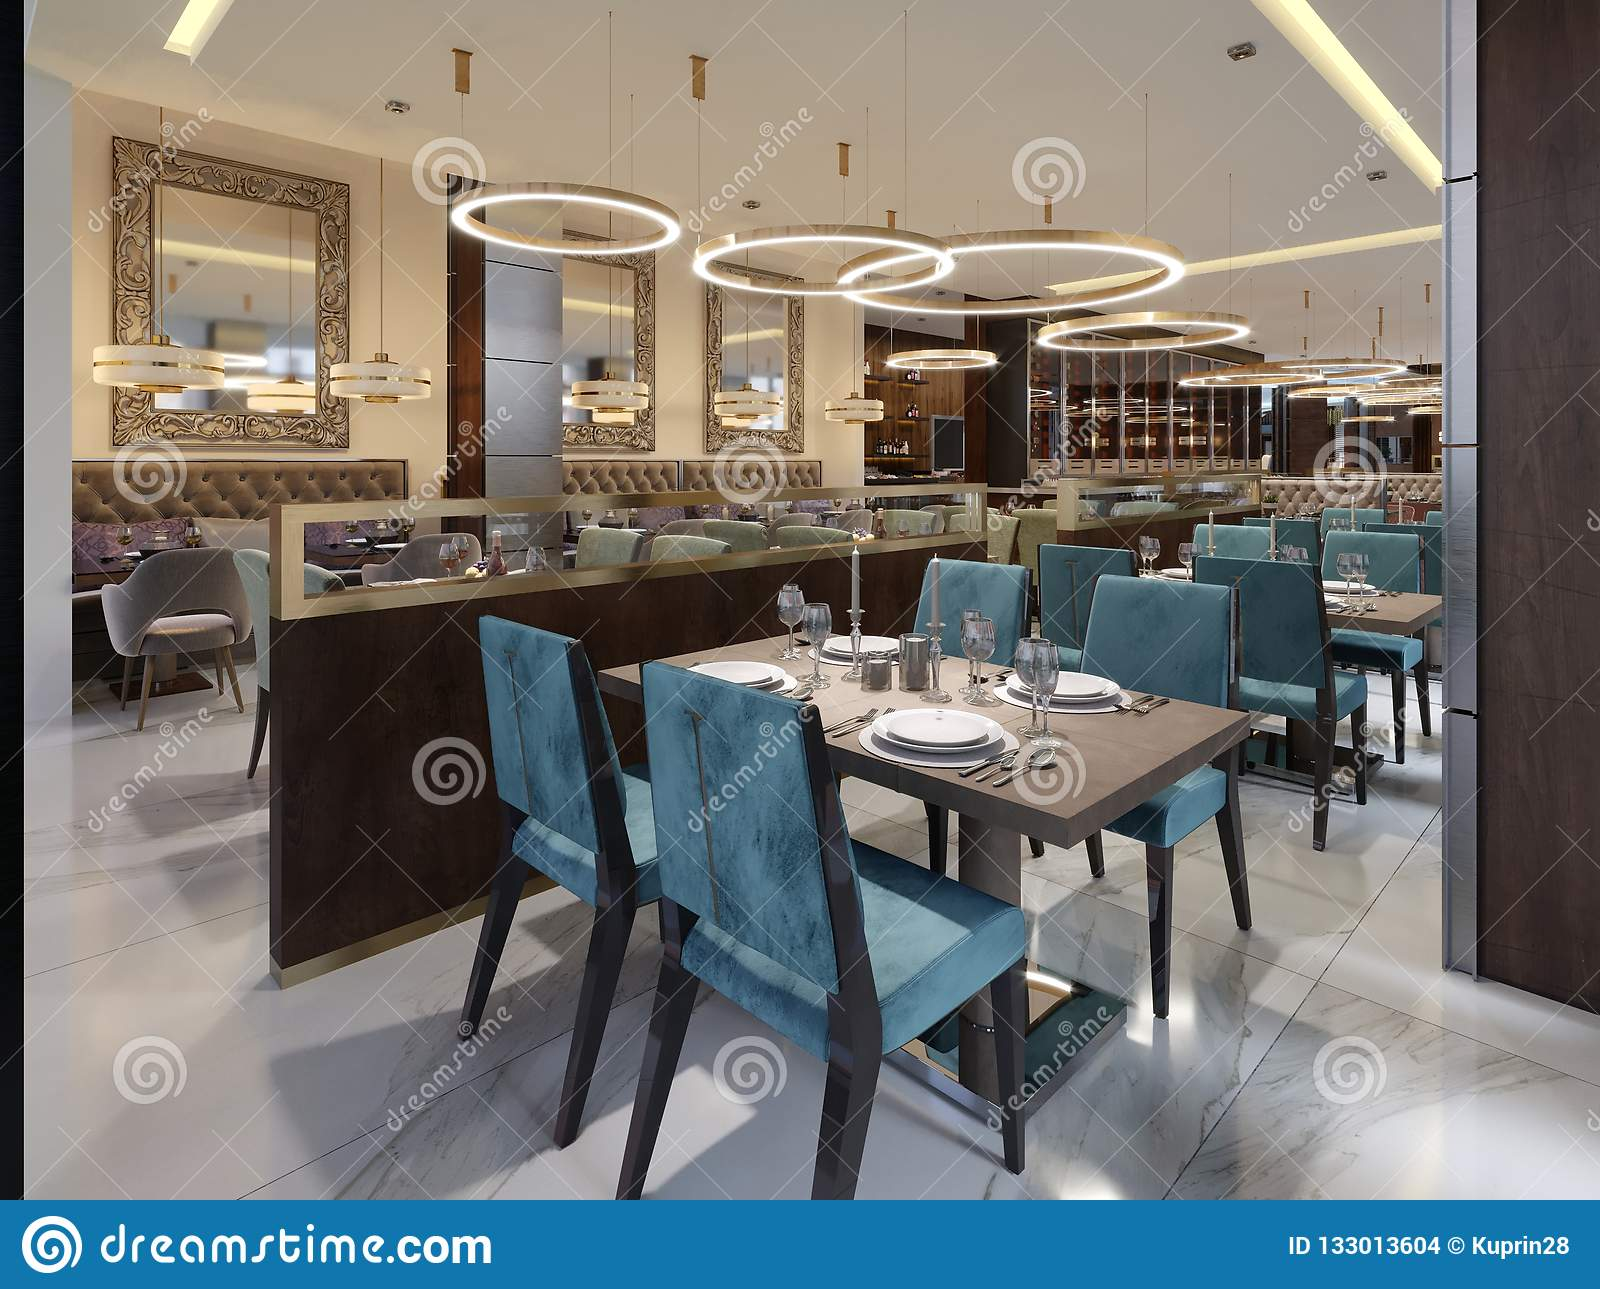 Cozy Luxury Interior Of Restaurant Comfortable Modern Dining Place Contemporary Design Background Stock Illustration Illustration Of Architecture Interior 133013604